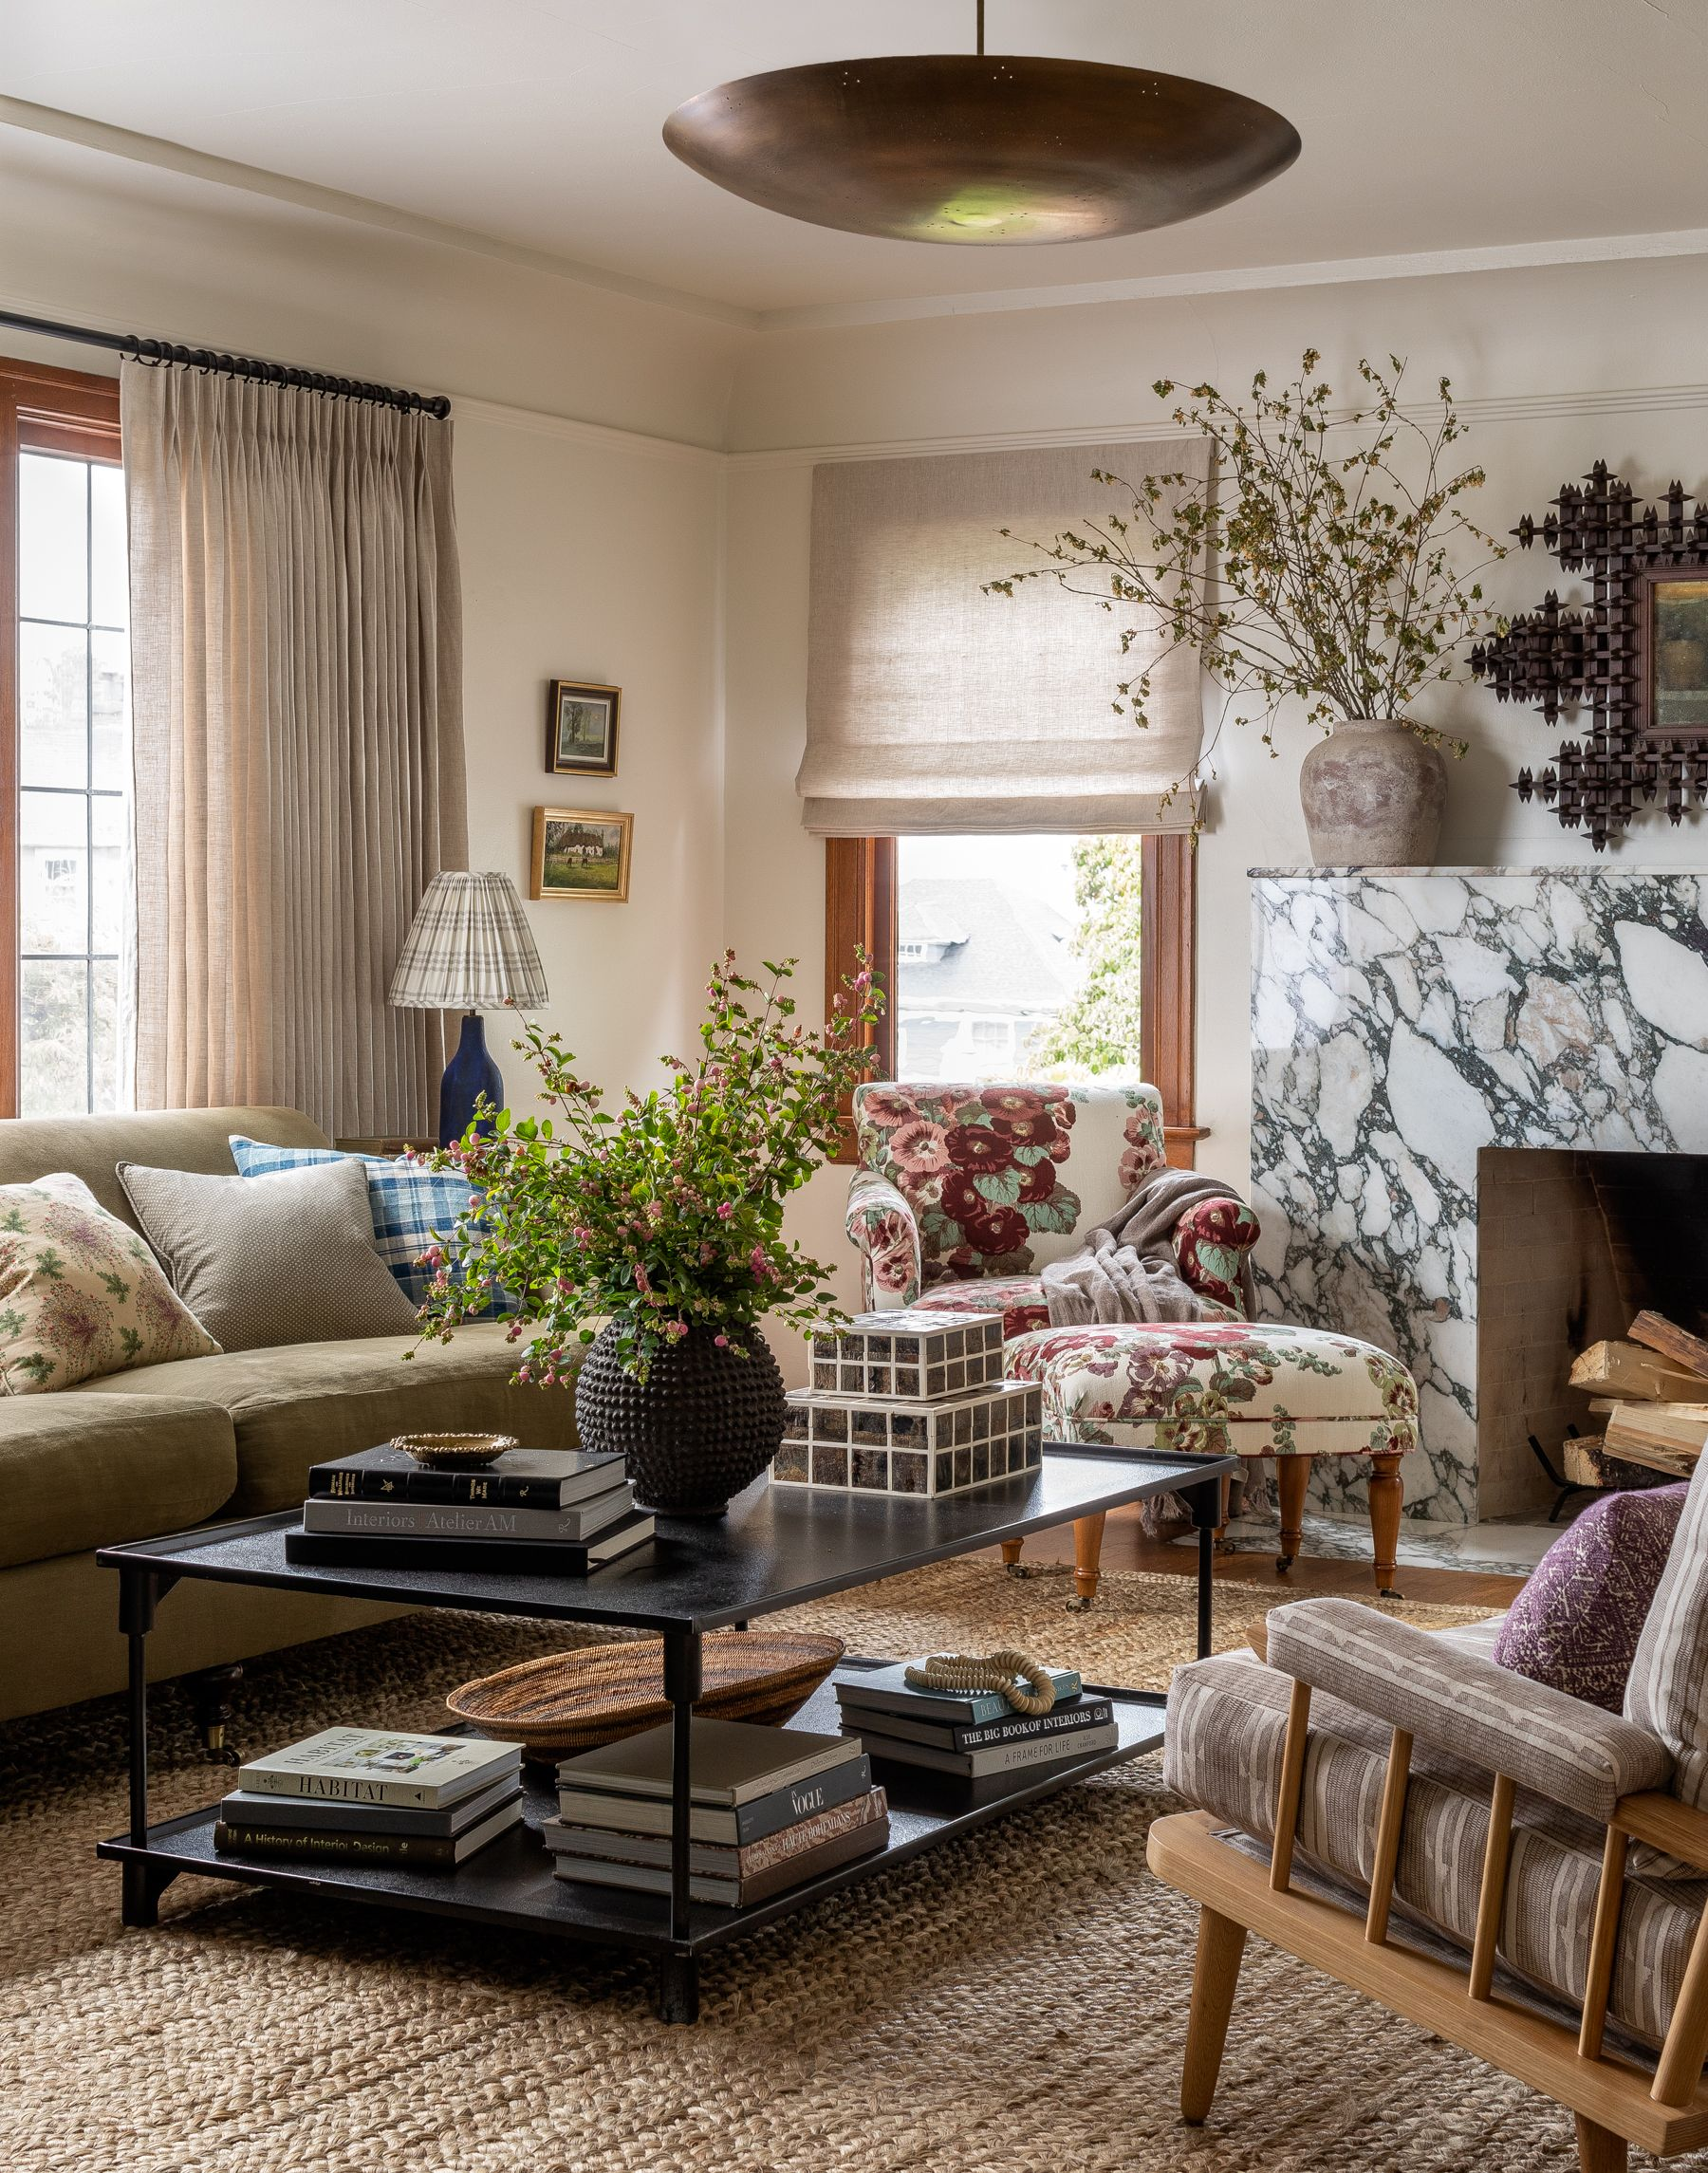 House Tour This Seattle Home With Muted Color And Layered Textiles Has Major English Cottage Sty In 2020 Living Room Colors Eclectic Living Room Vintage Living Room #traditional #living #room #style